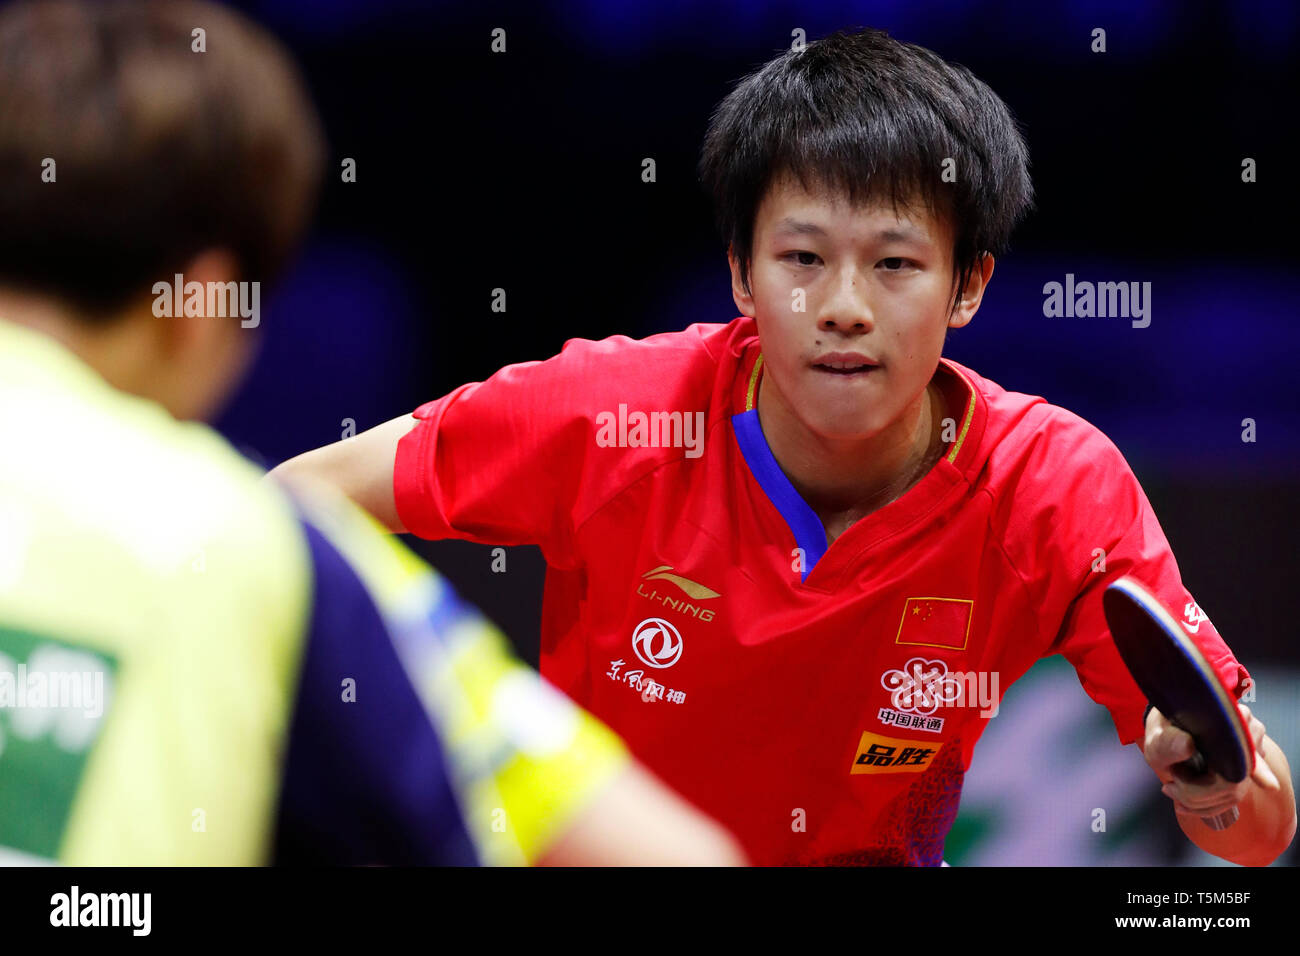 HUNGEXPO Budapest Fair Center, Budapest, Hungary. 25th Apr, 2019. Lin Gaoyuan (CHN), APRIL 25, 2019 - Table Tennis : 2019 World Table Tennis Championships Men's singles 16 Round match at HUNGEXPO Budapest Fair Center, Budapest, Hungary. Credit: D.Nakashima/AFLO/Alamy Live News Stock Photo